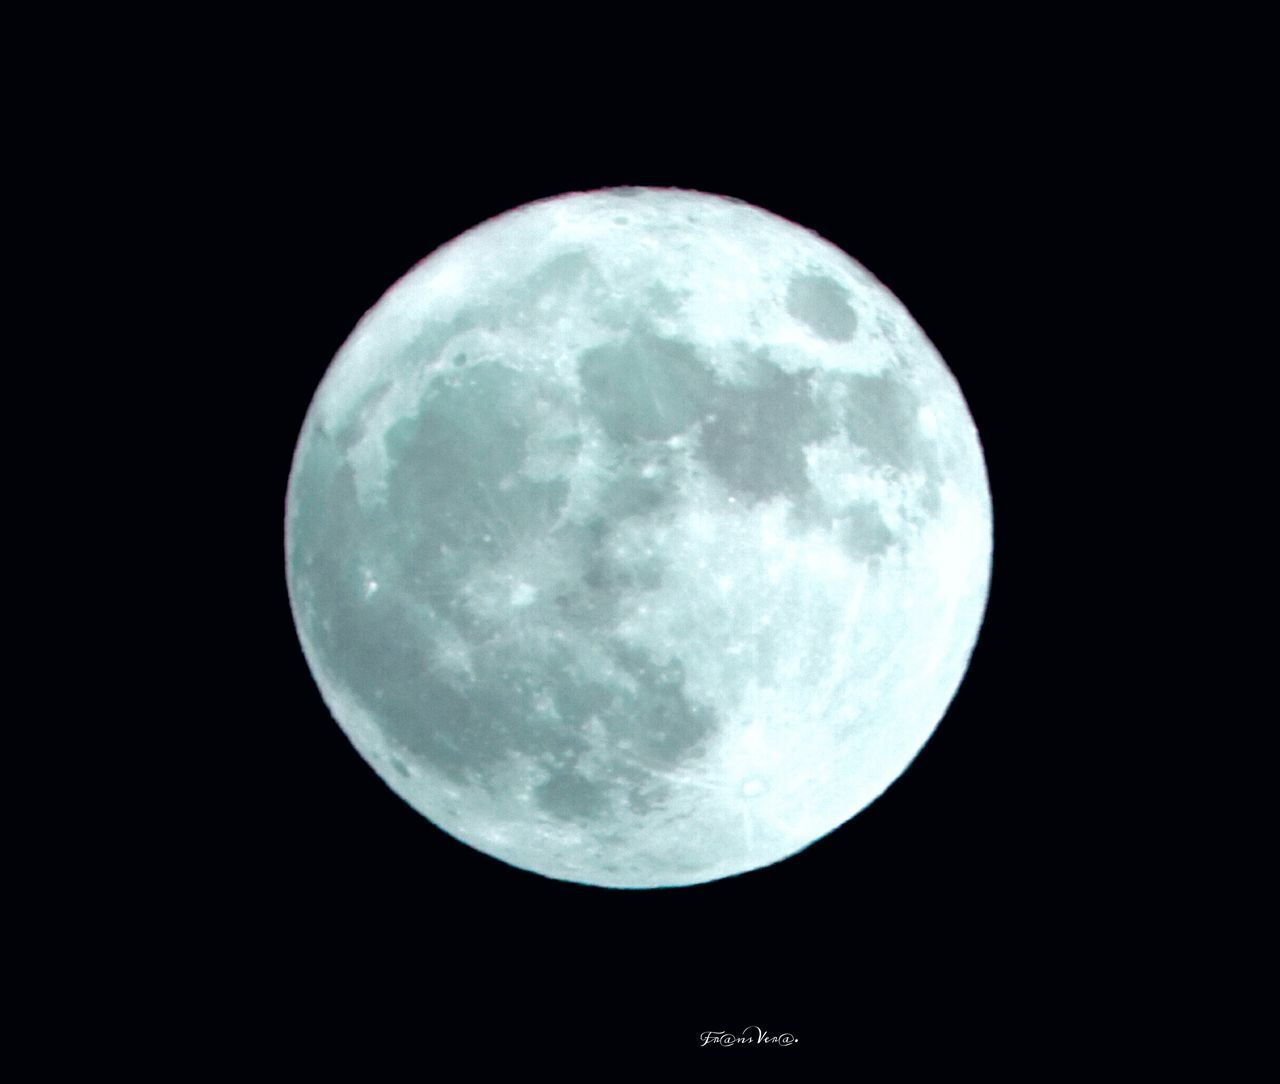 moon, night, full moon, moon surface, astronomy, planetary moon, majestic, space exploration, no people, beauty in nature, nature, scenics, tranquility, outdoors, sky, discovery, space, close-up, low angle view, satellite view